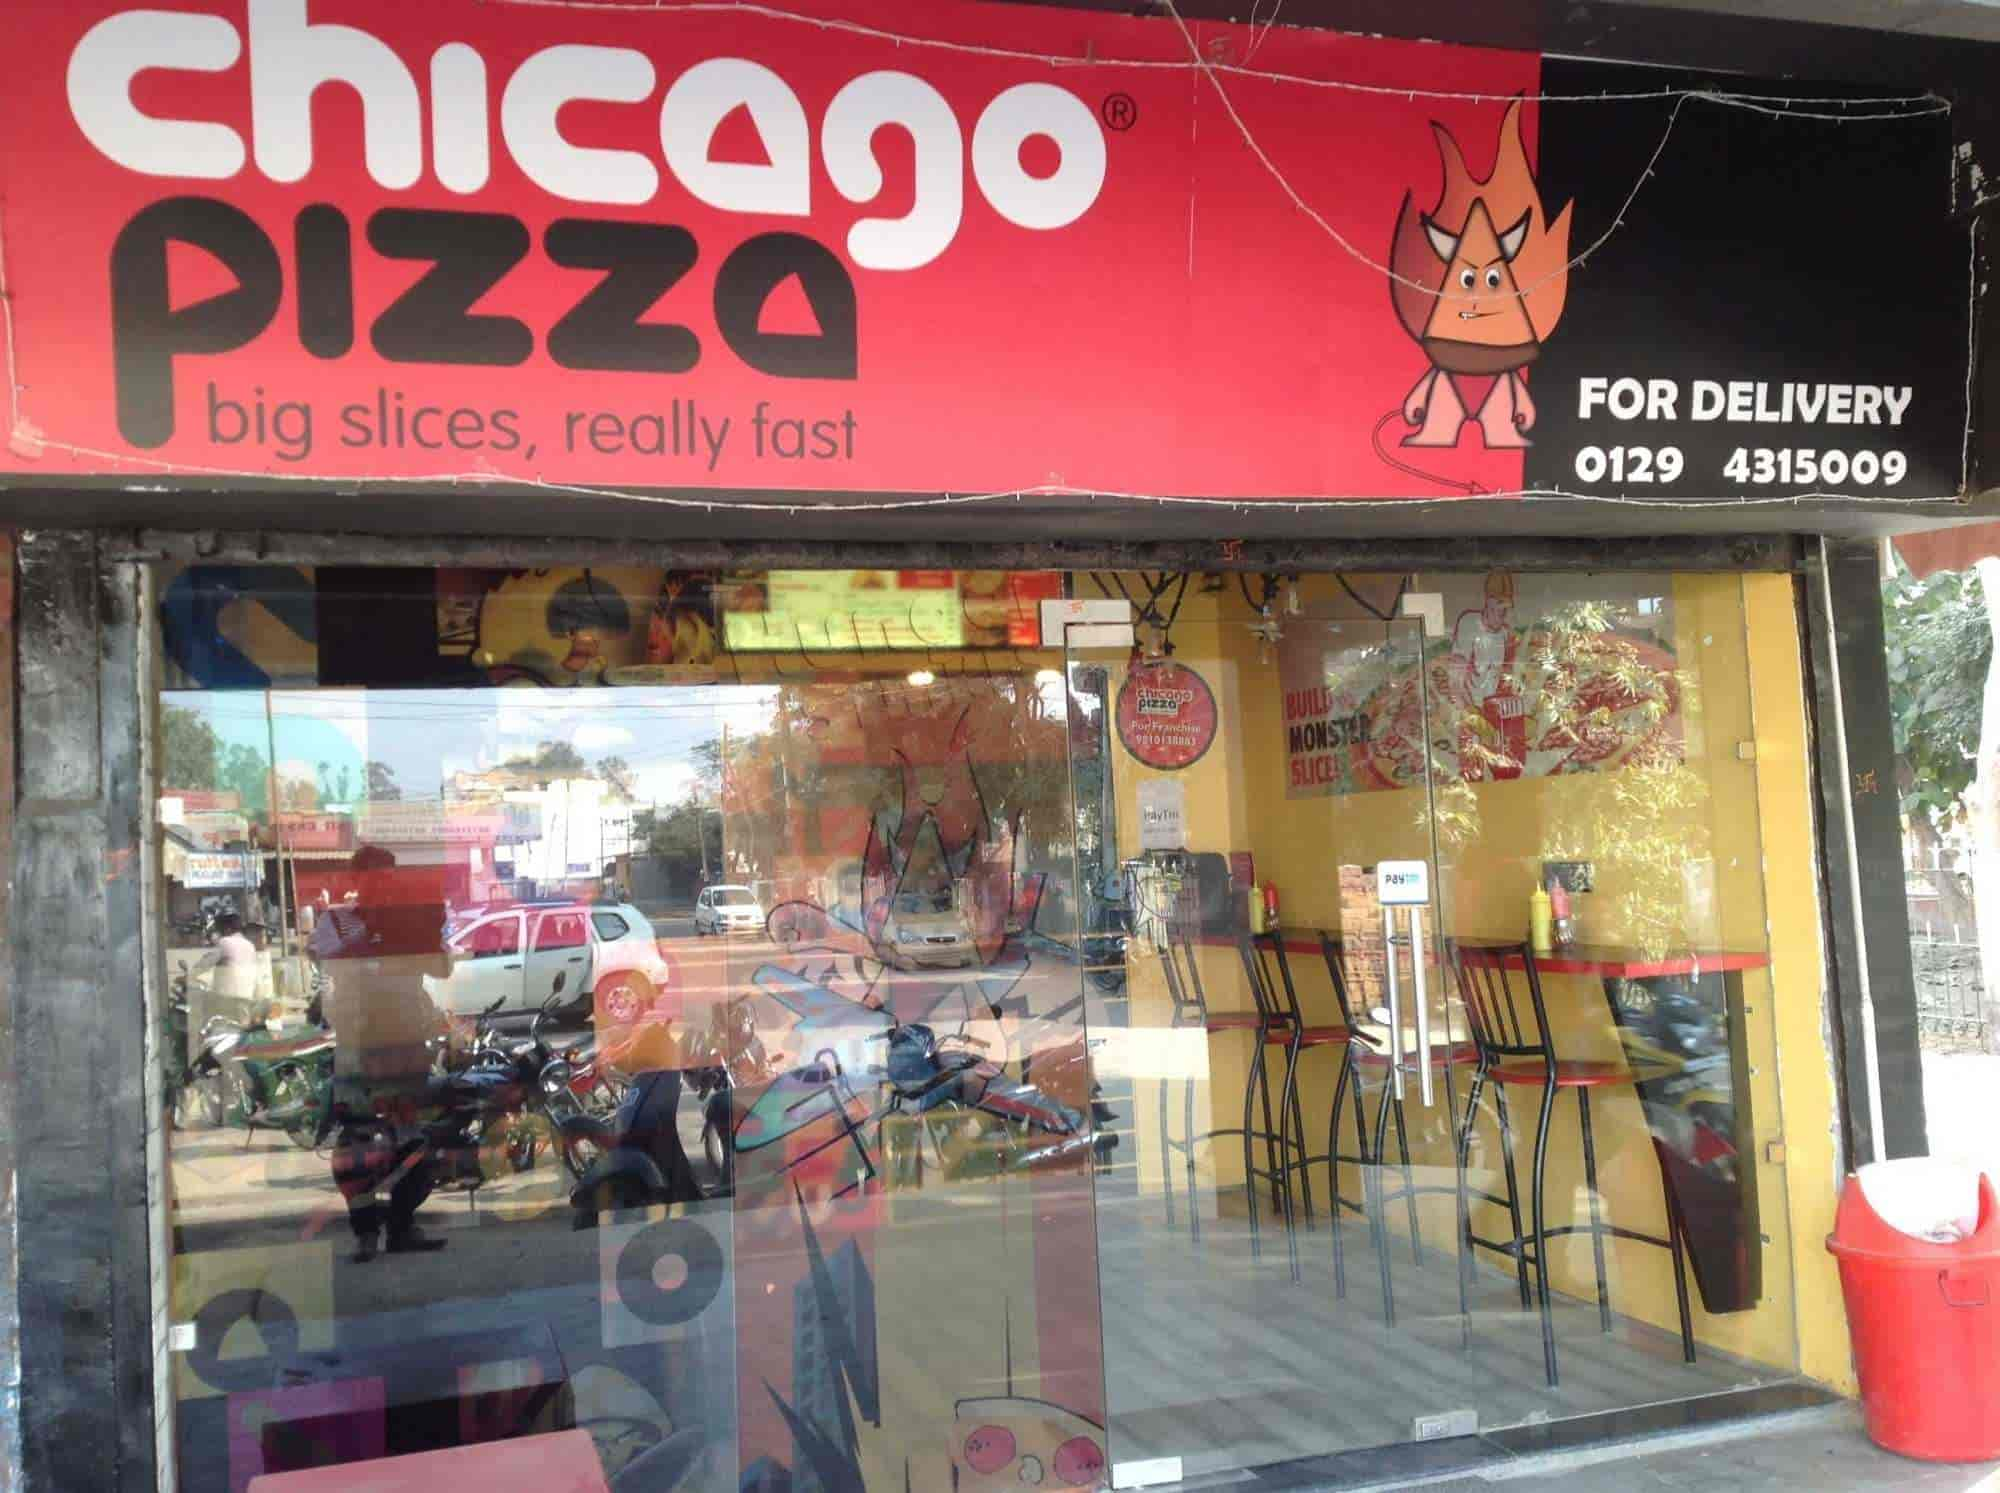 Chicago Pizza Closed Down Photos Sector 49 Faridabad Pictures